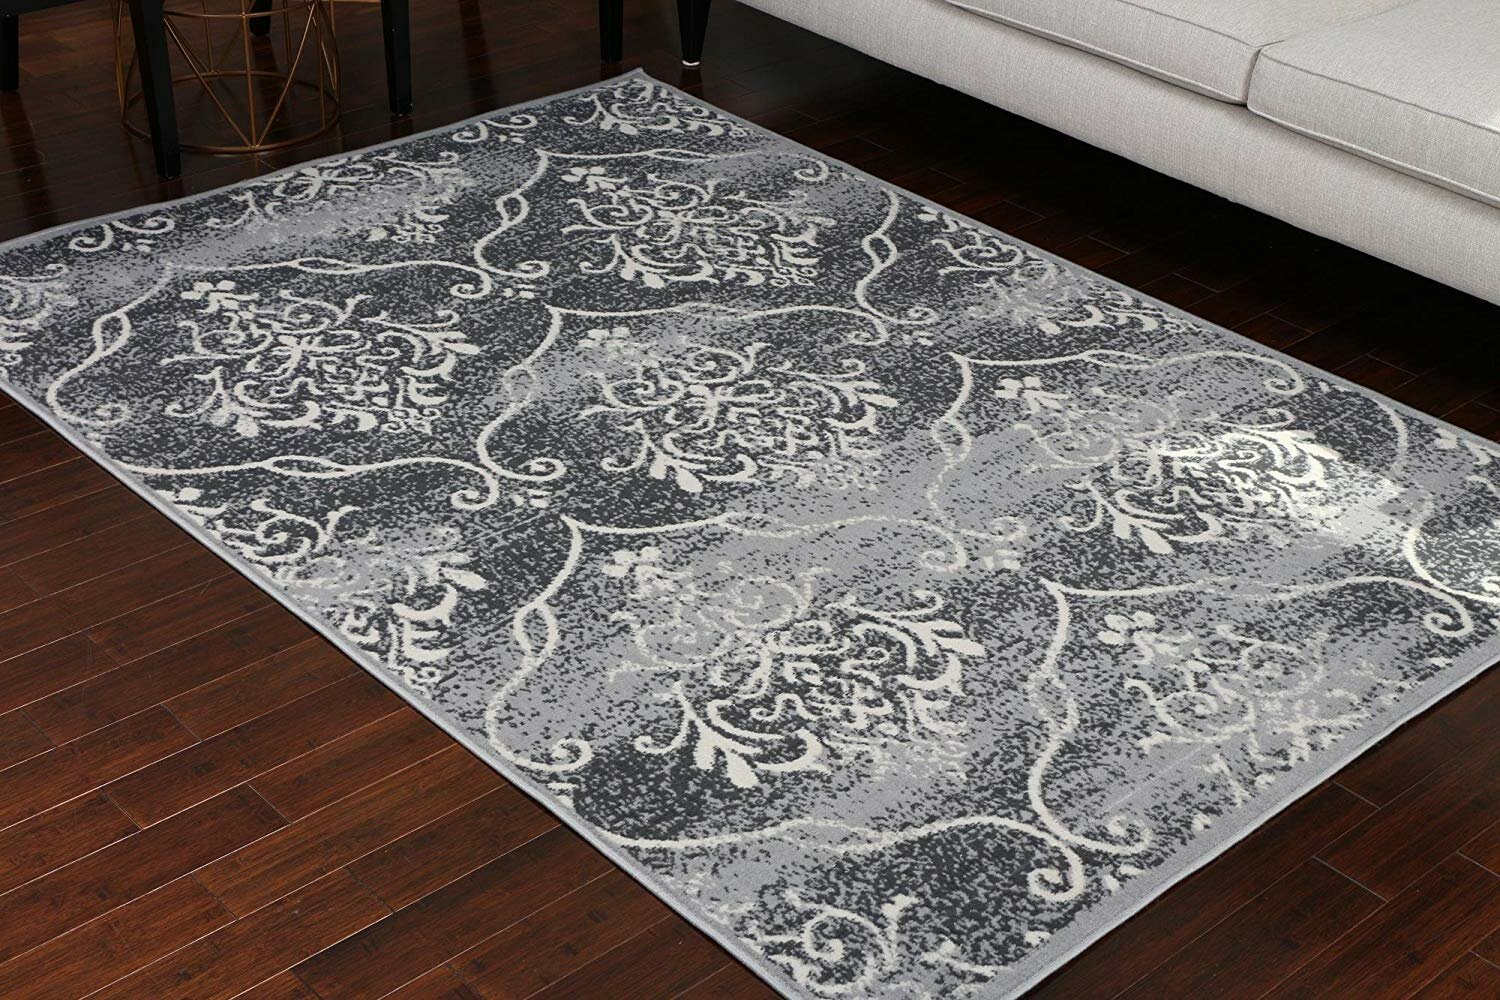 Ventura Large Print Trellis Design Gray Area Rug